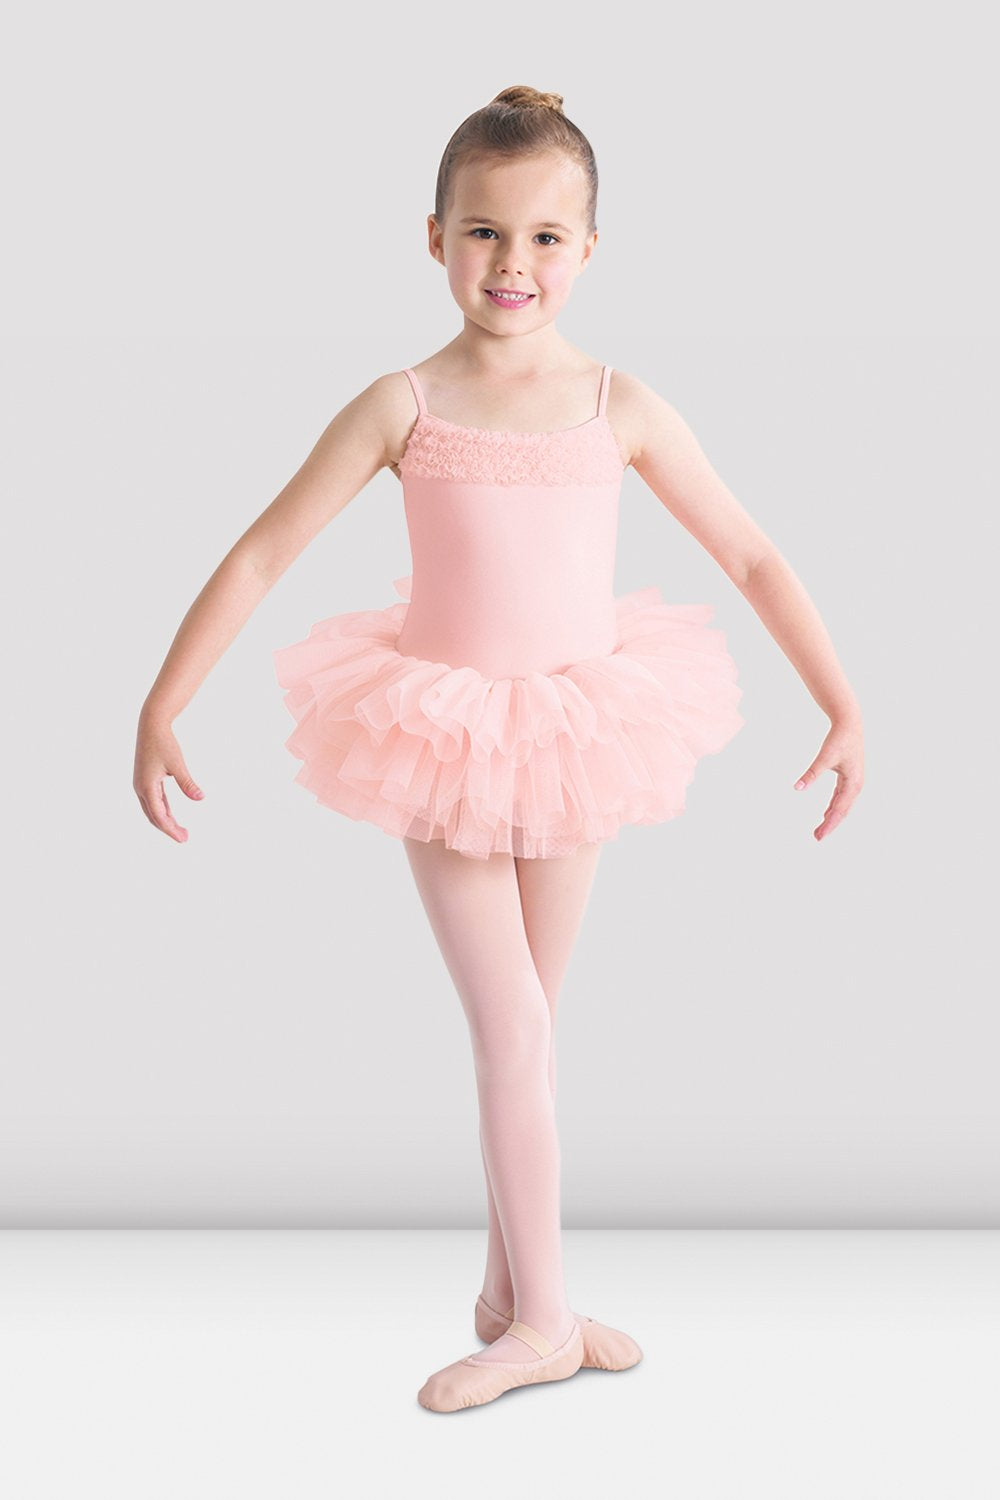 Girls Desdemona Tutu Leotard - BLOCH US